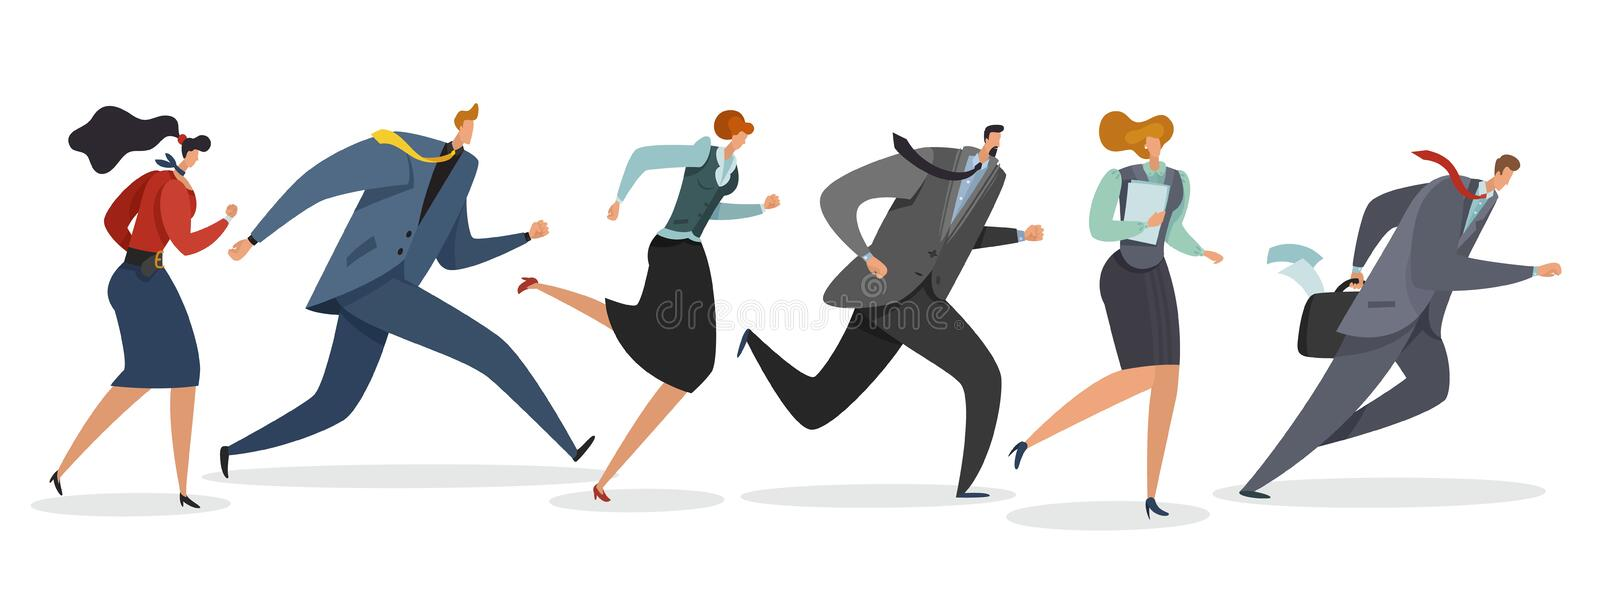 Business team running. Persons waving flag and jogging follow leader to professional triumph winning illustration vector illustration